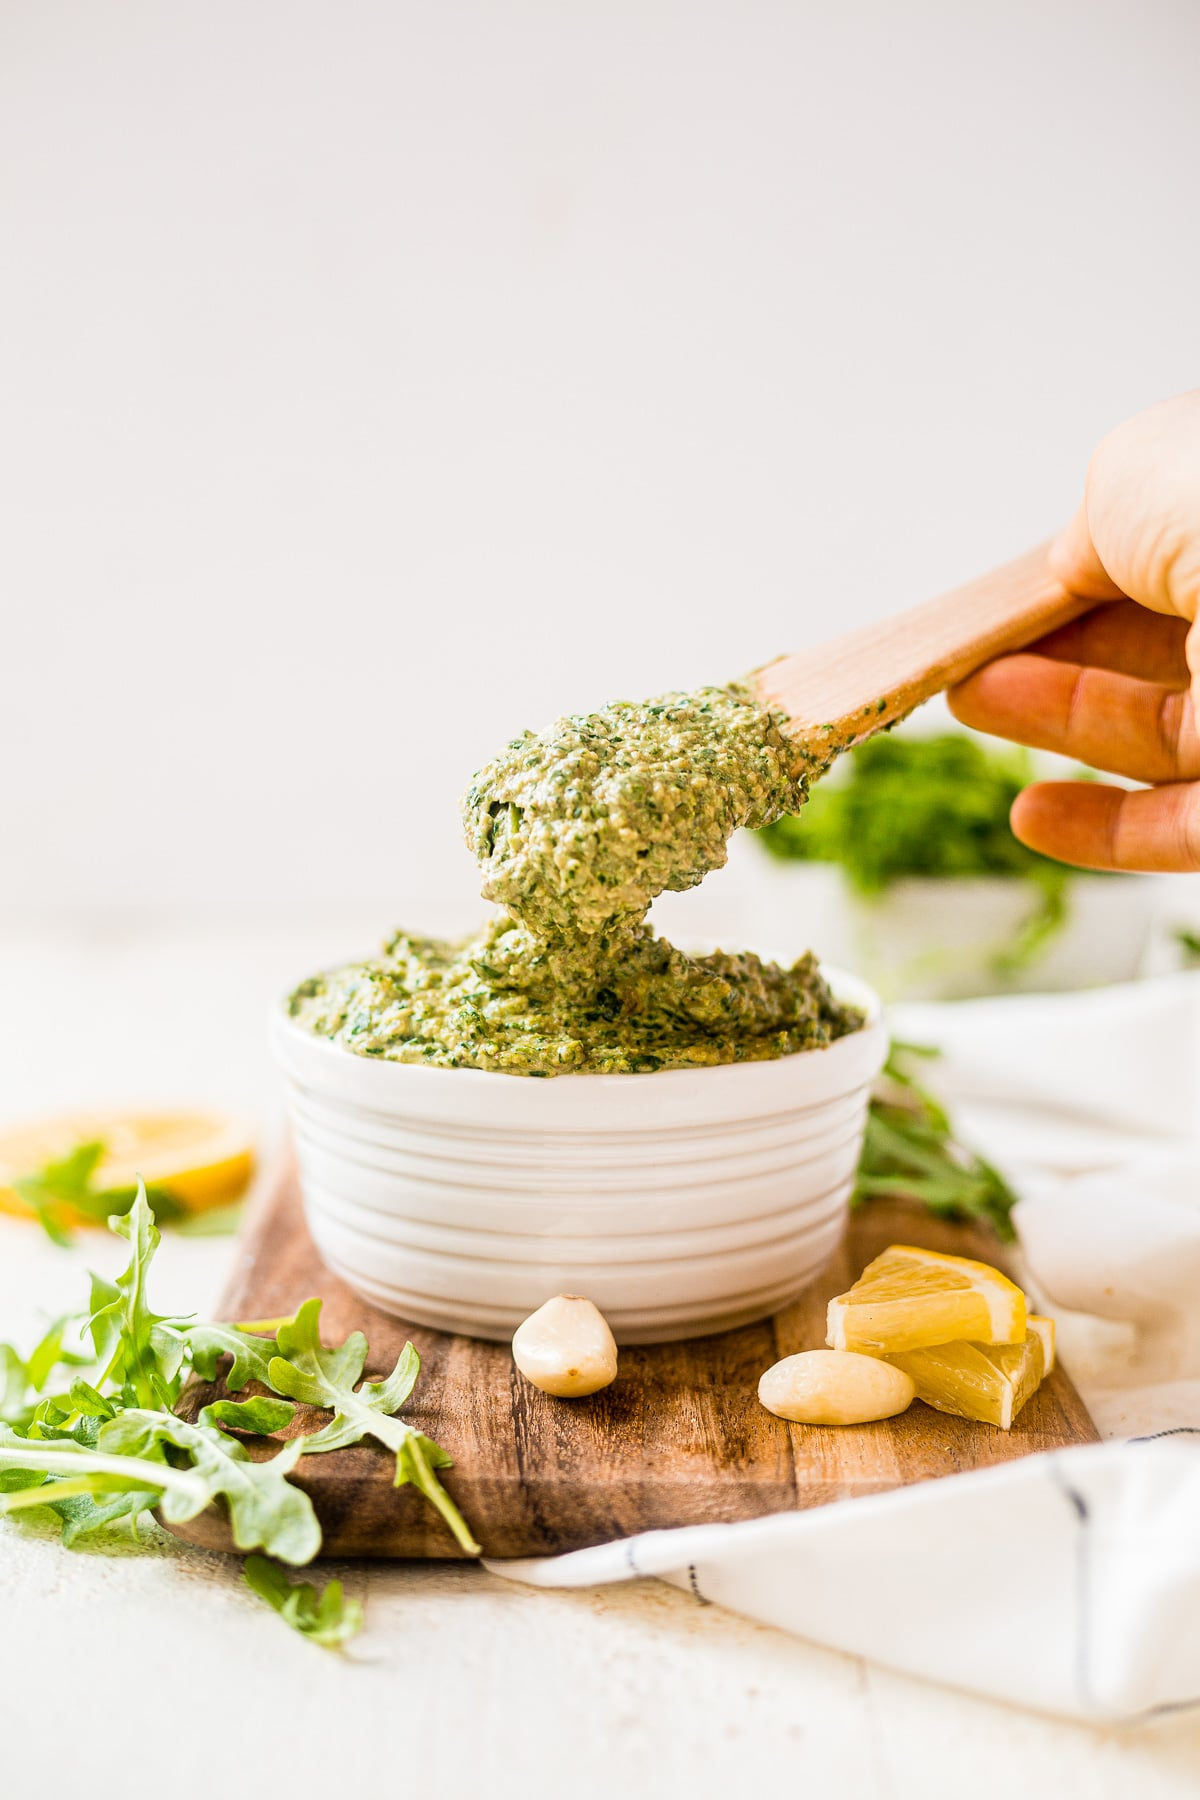 wooden spoon scooping out a heaping tablespoon of arugula pesto from a white bowl